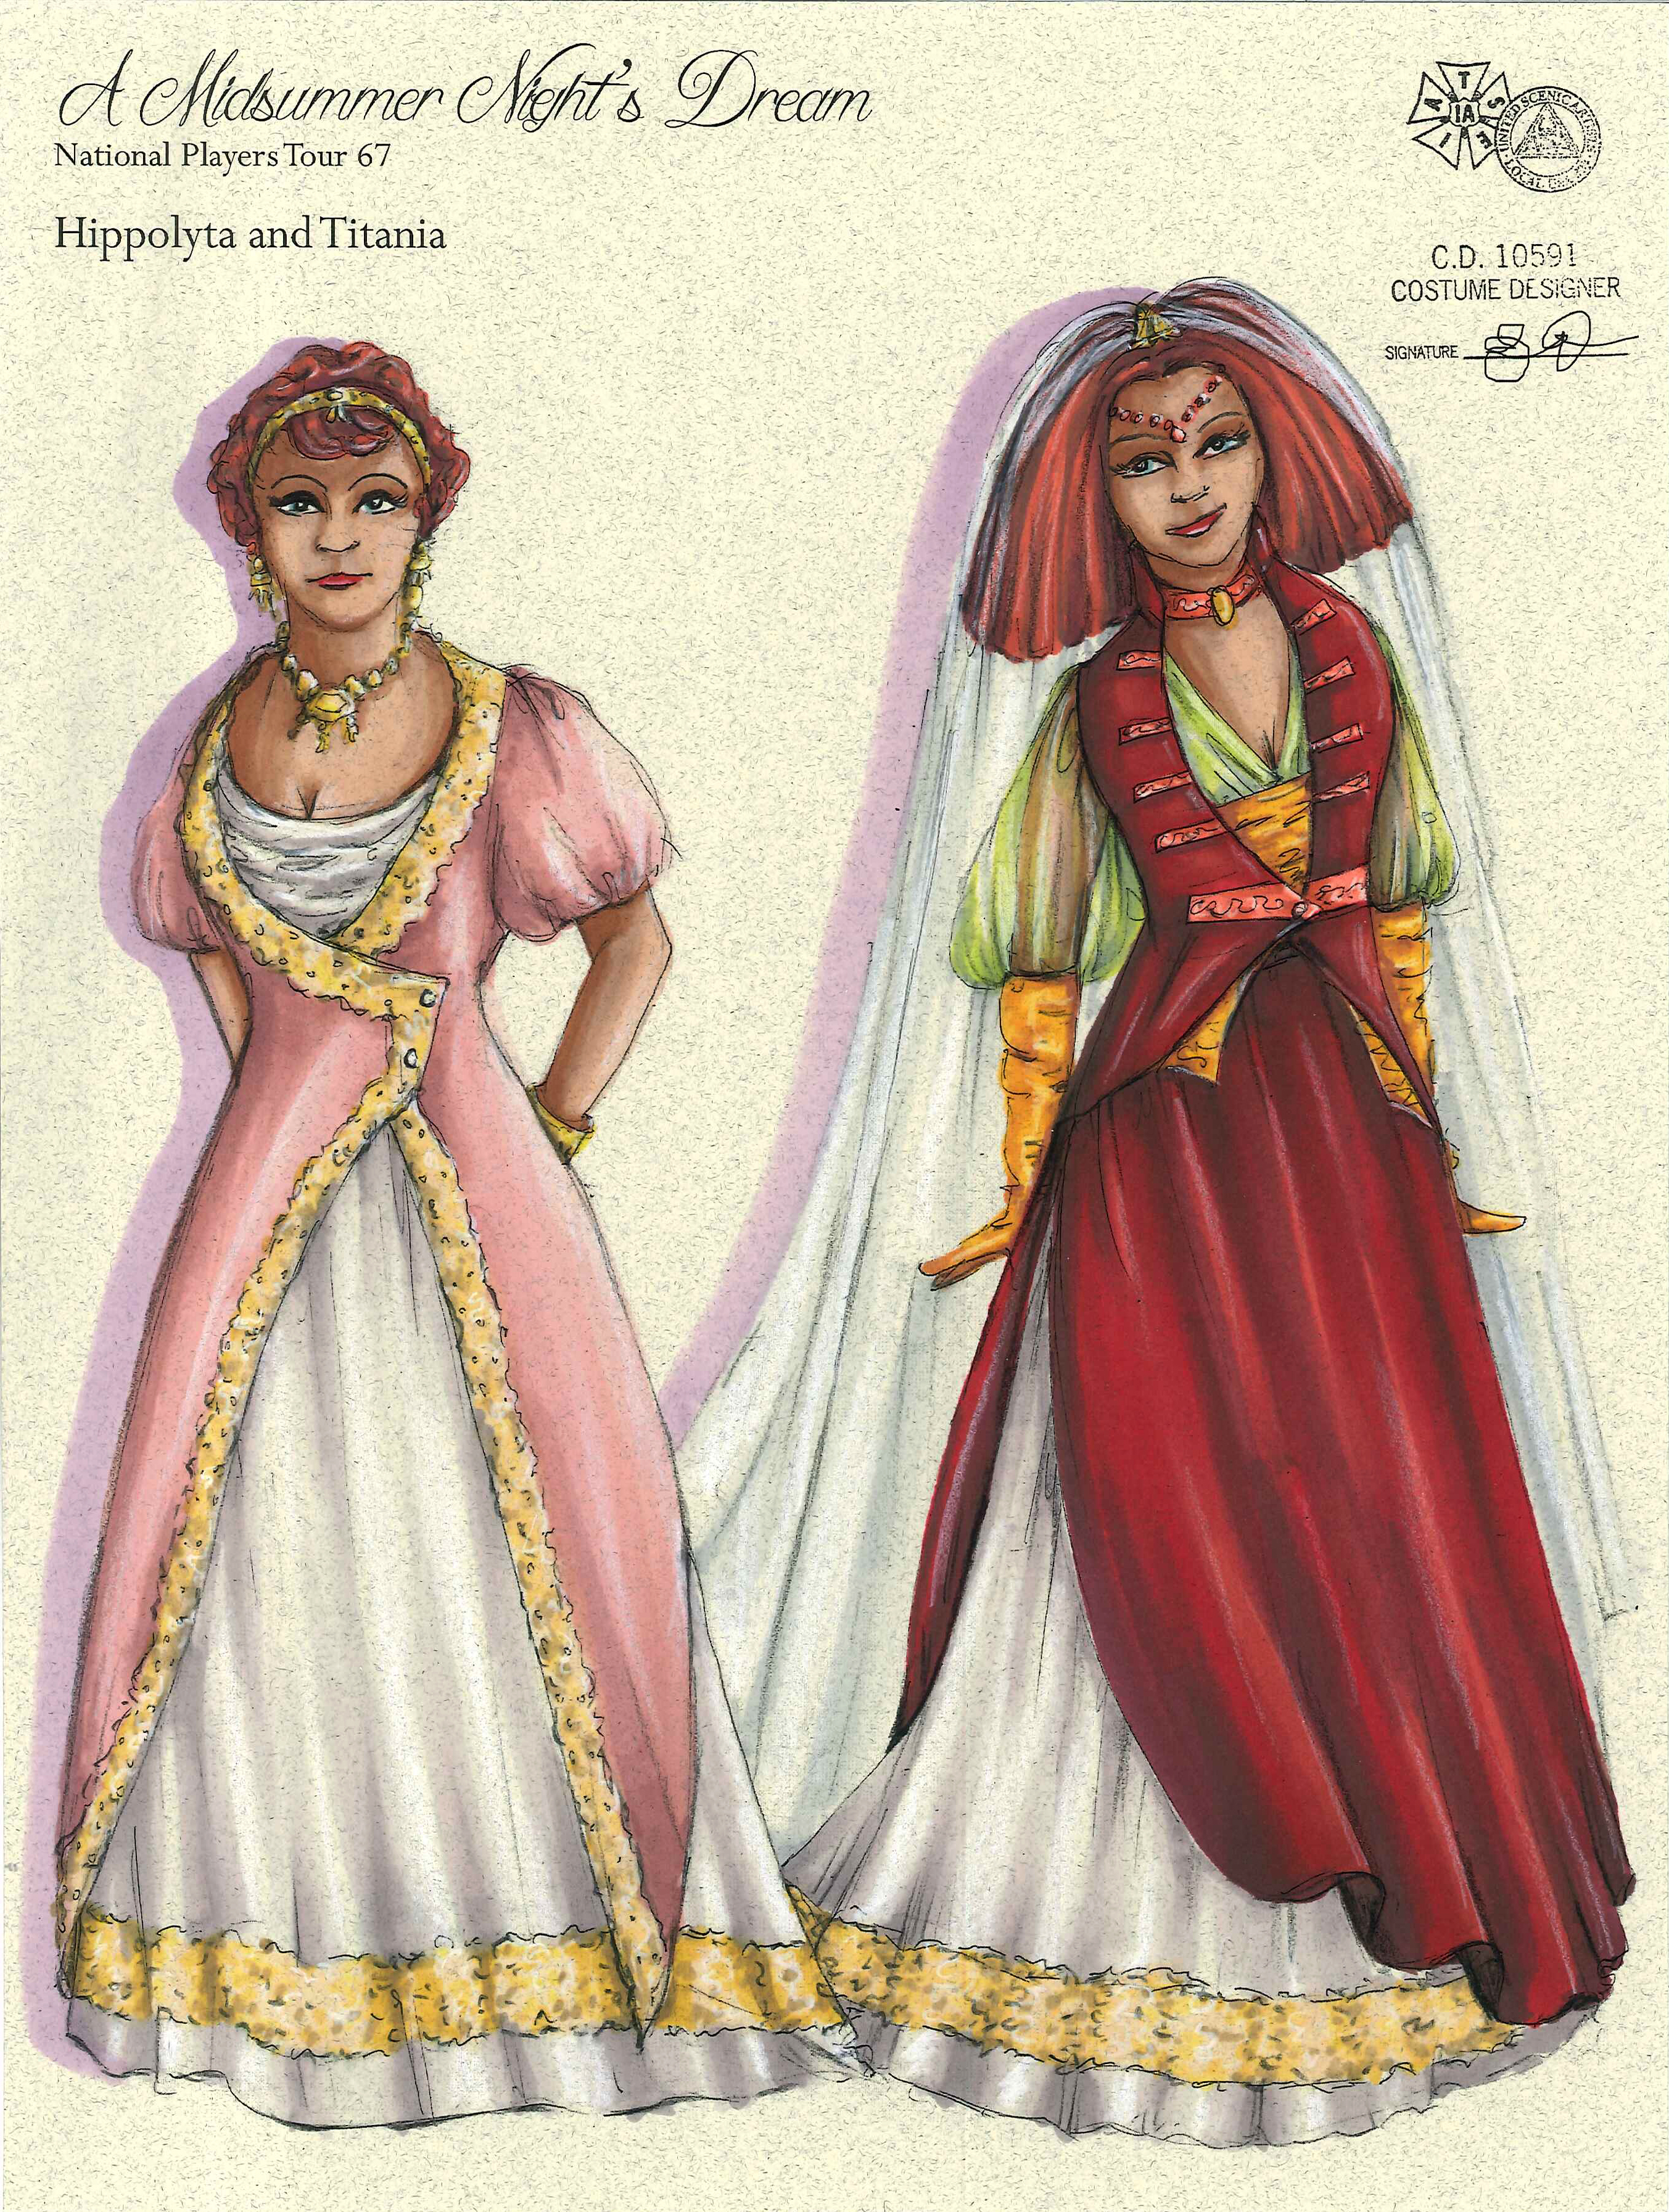 Hippolyta and Titania from Midsummer